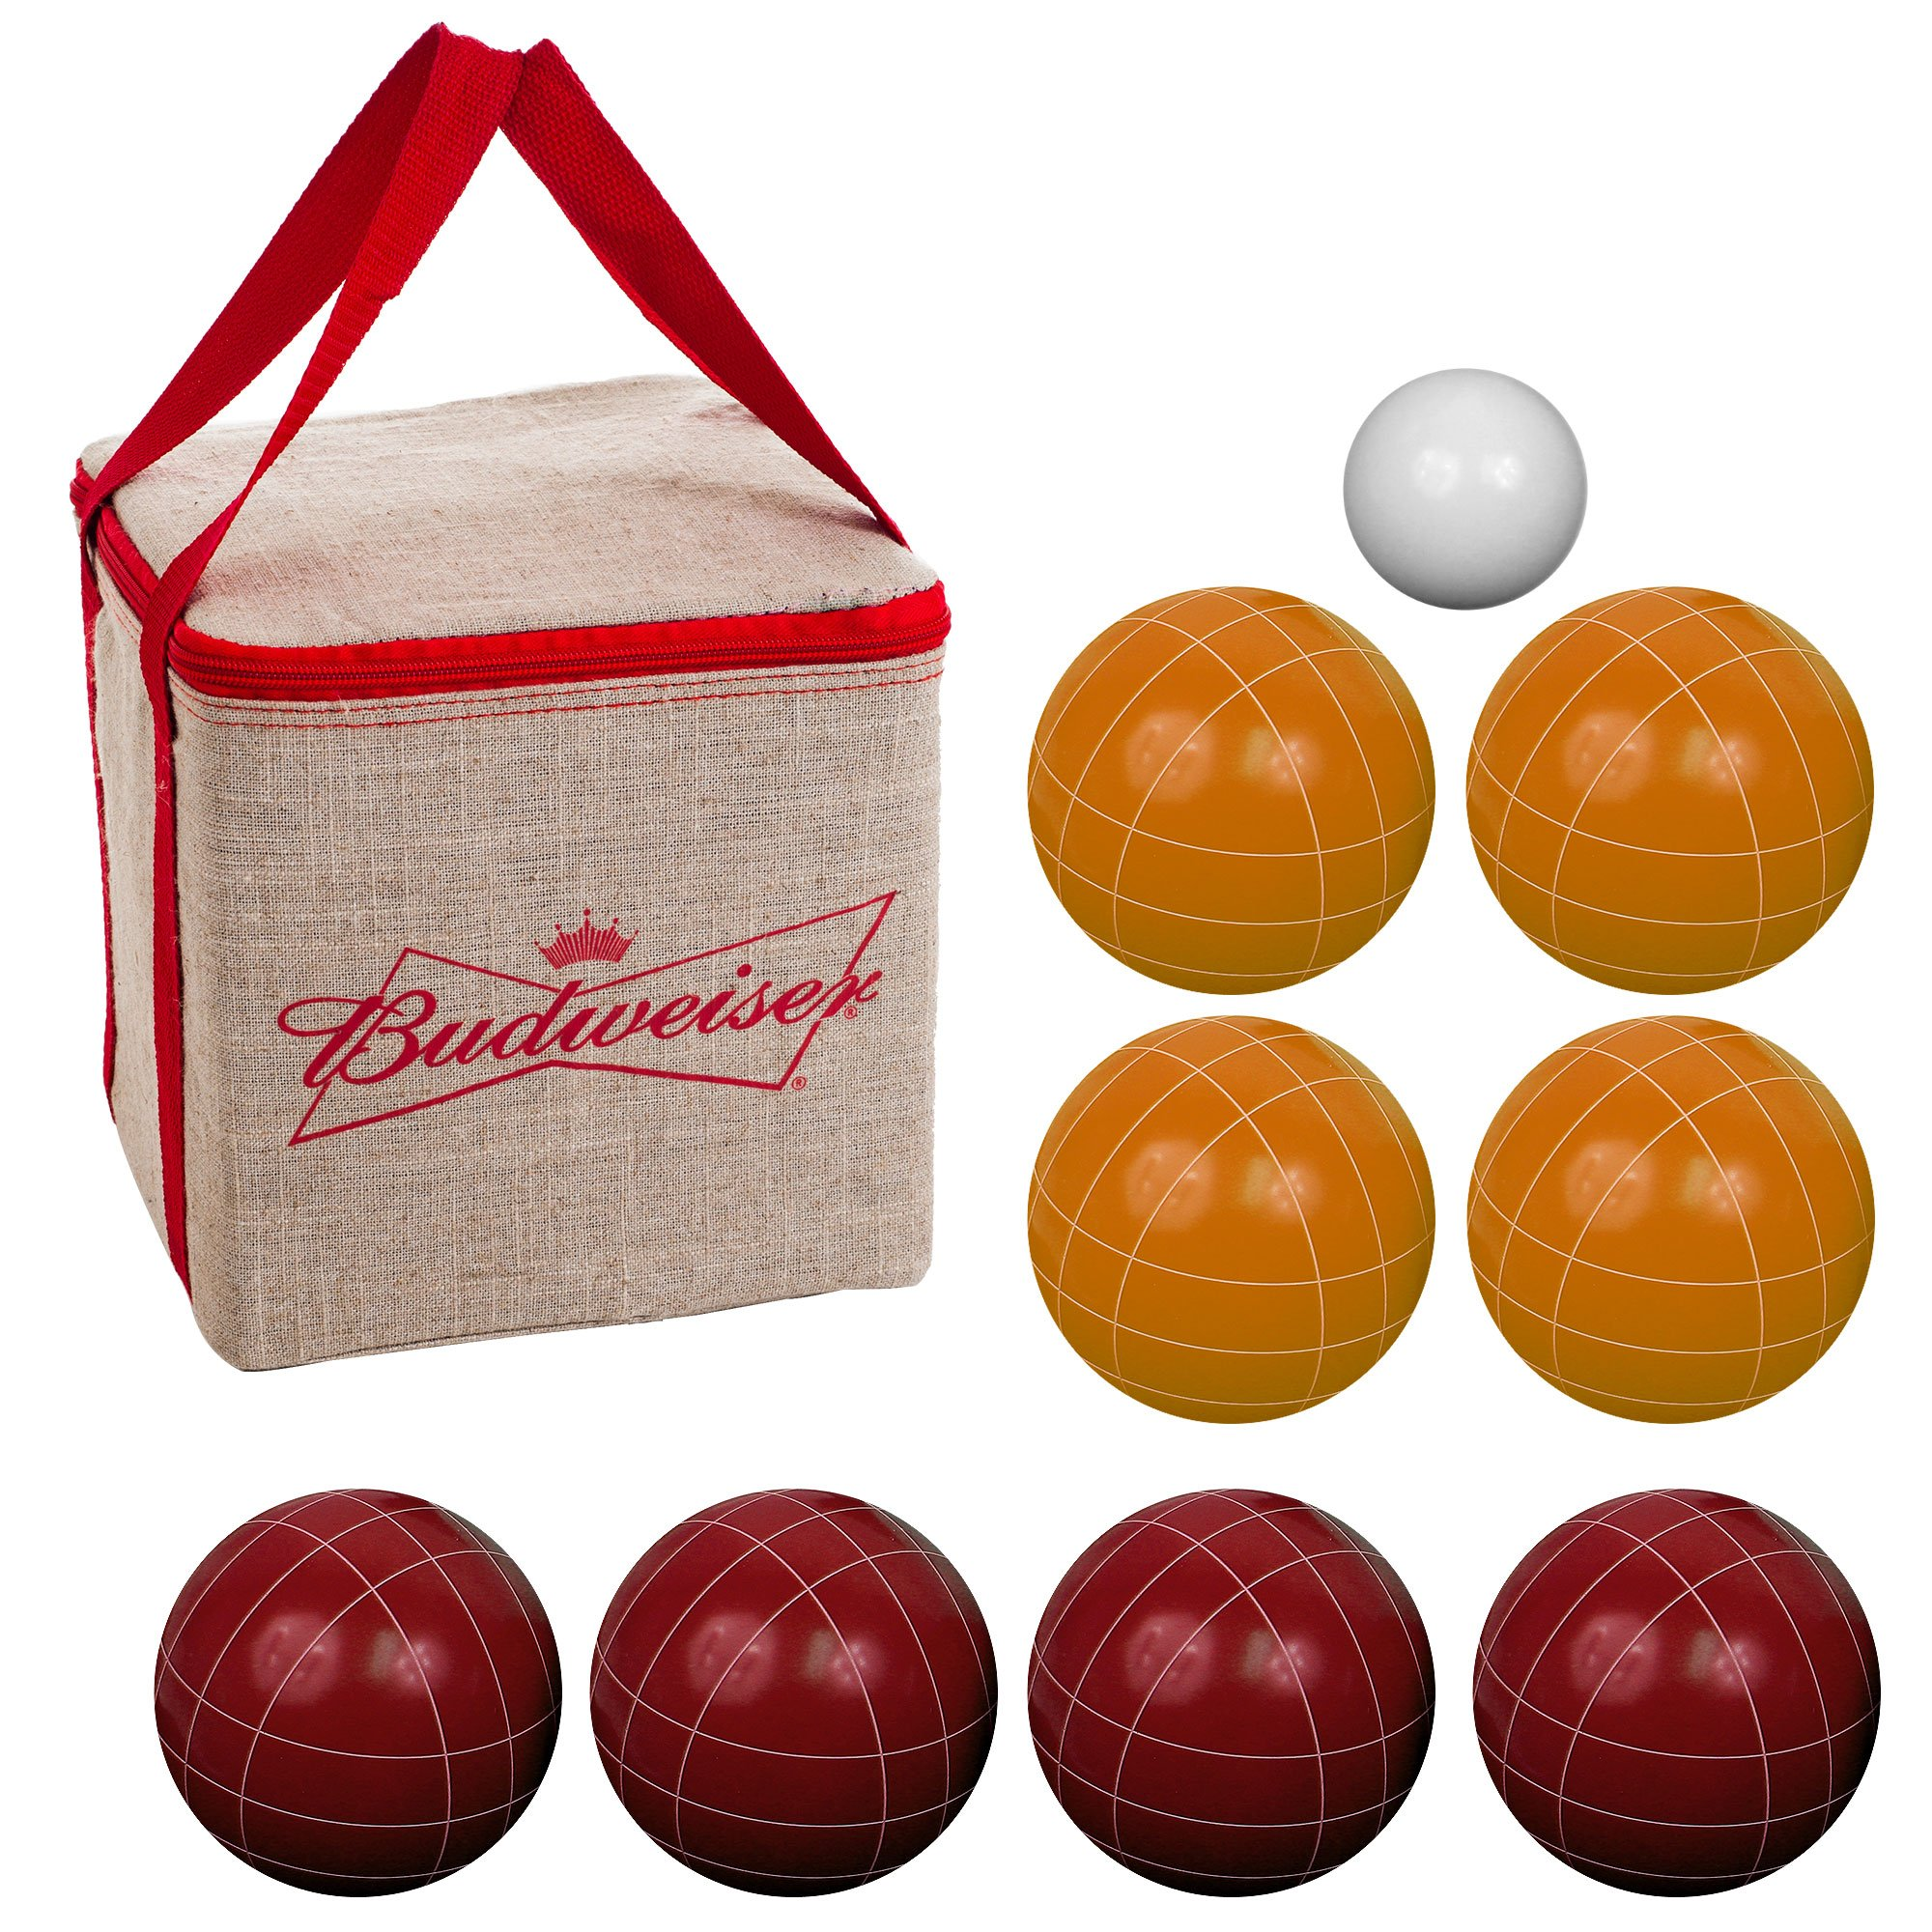 Bocce Ball Set- Budweiser Regulation Outdoor Family Bocce Game for Backyard, Lawn, Beach and More- 8 Balls, Pallino, and Carrying Case by Hey! Play!